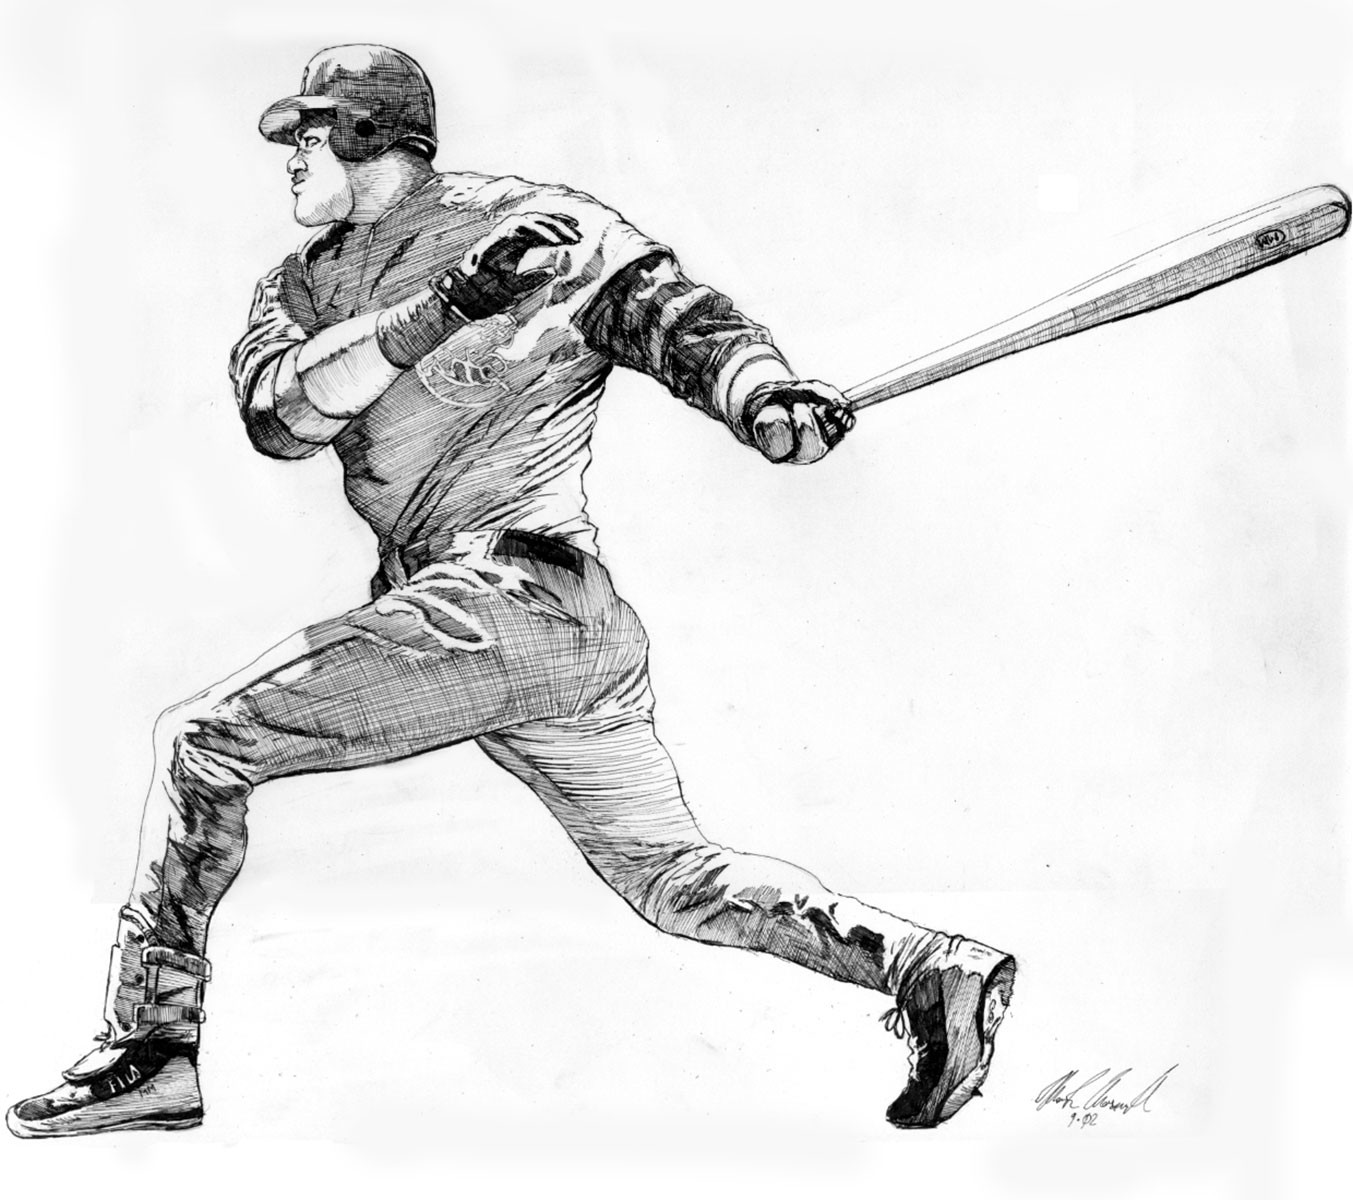 "8"" x 10"" pen and ink drawing of Sammy Sosa of the Chicago Cubs, drawn referencing a photo that appeared in a newspaper spread."